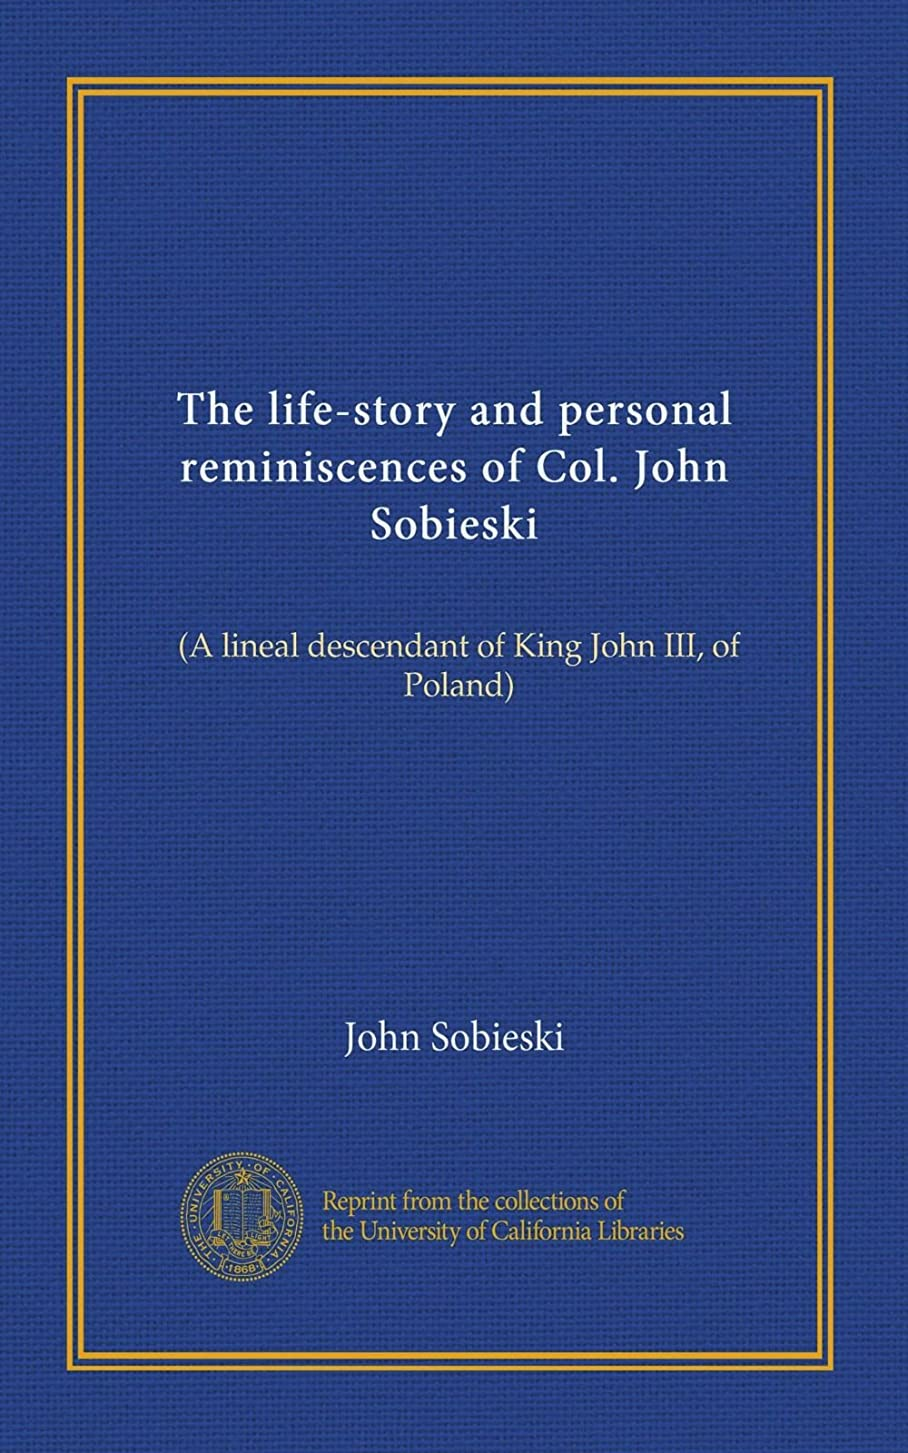 アダルト組み合わせるうがいThe life-story and personal reminiscences of Col. John Sobieski: (A lineal descendant of King John III, of Poland)